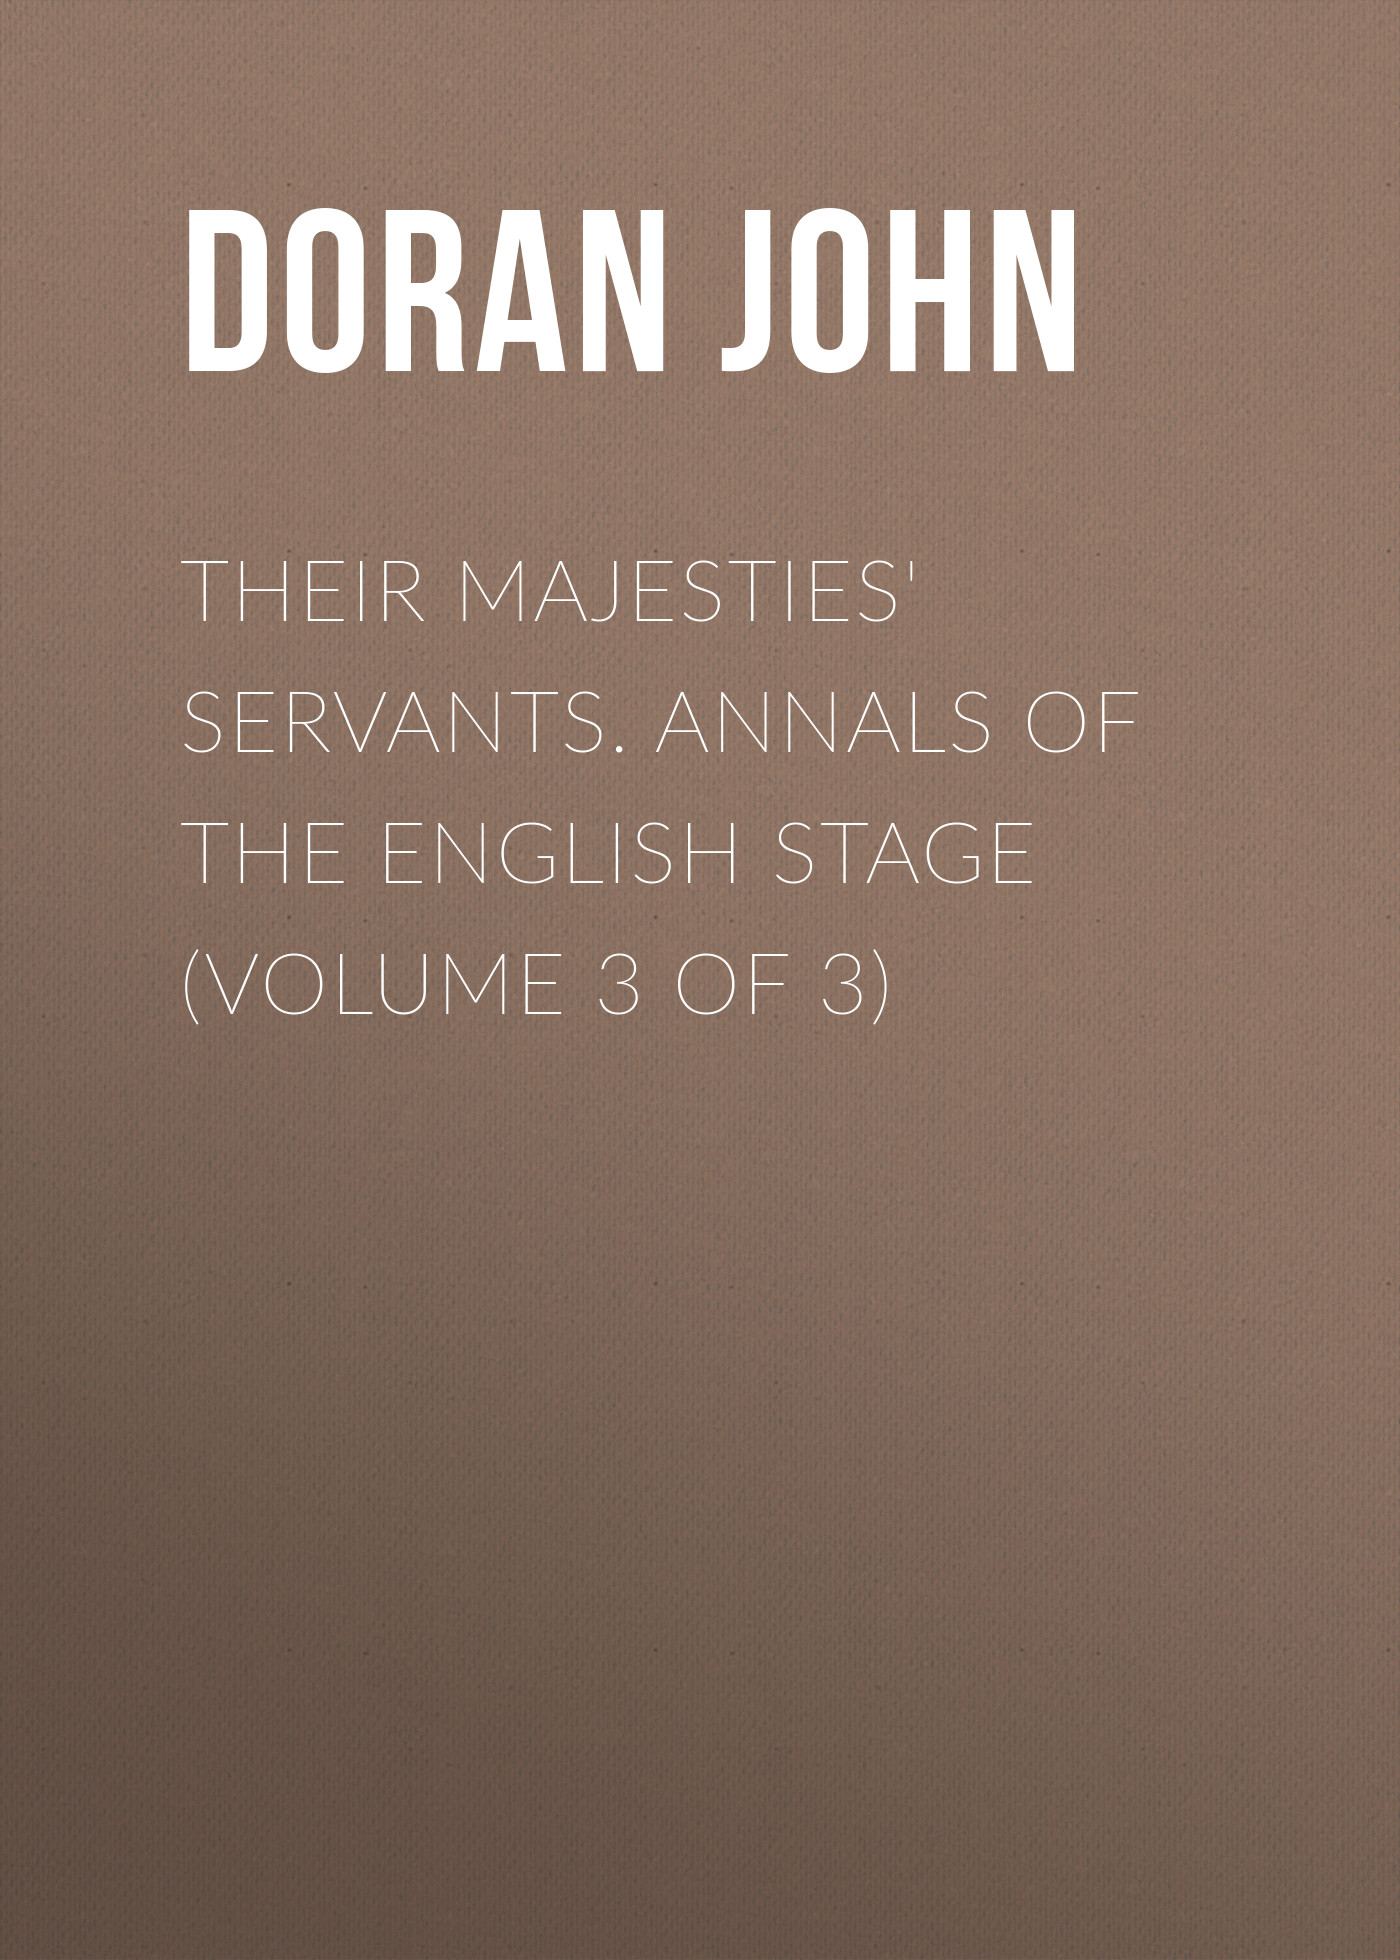 Doran John Their Majesties' Servants. Annals of the English Stage (Volume 3 of 3)